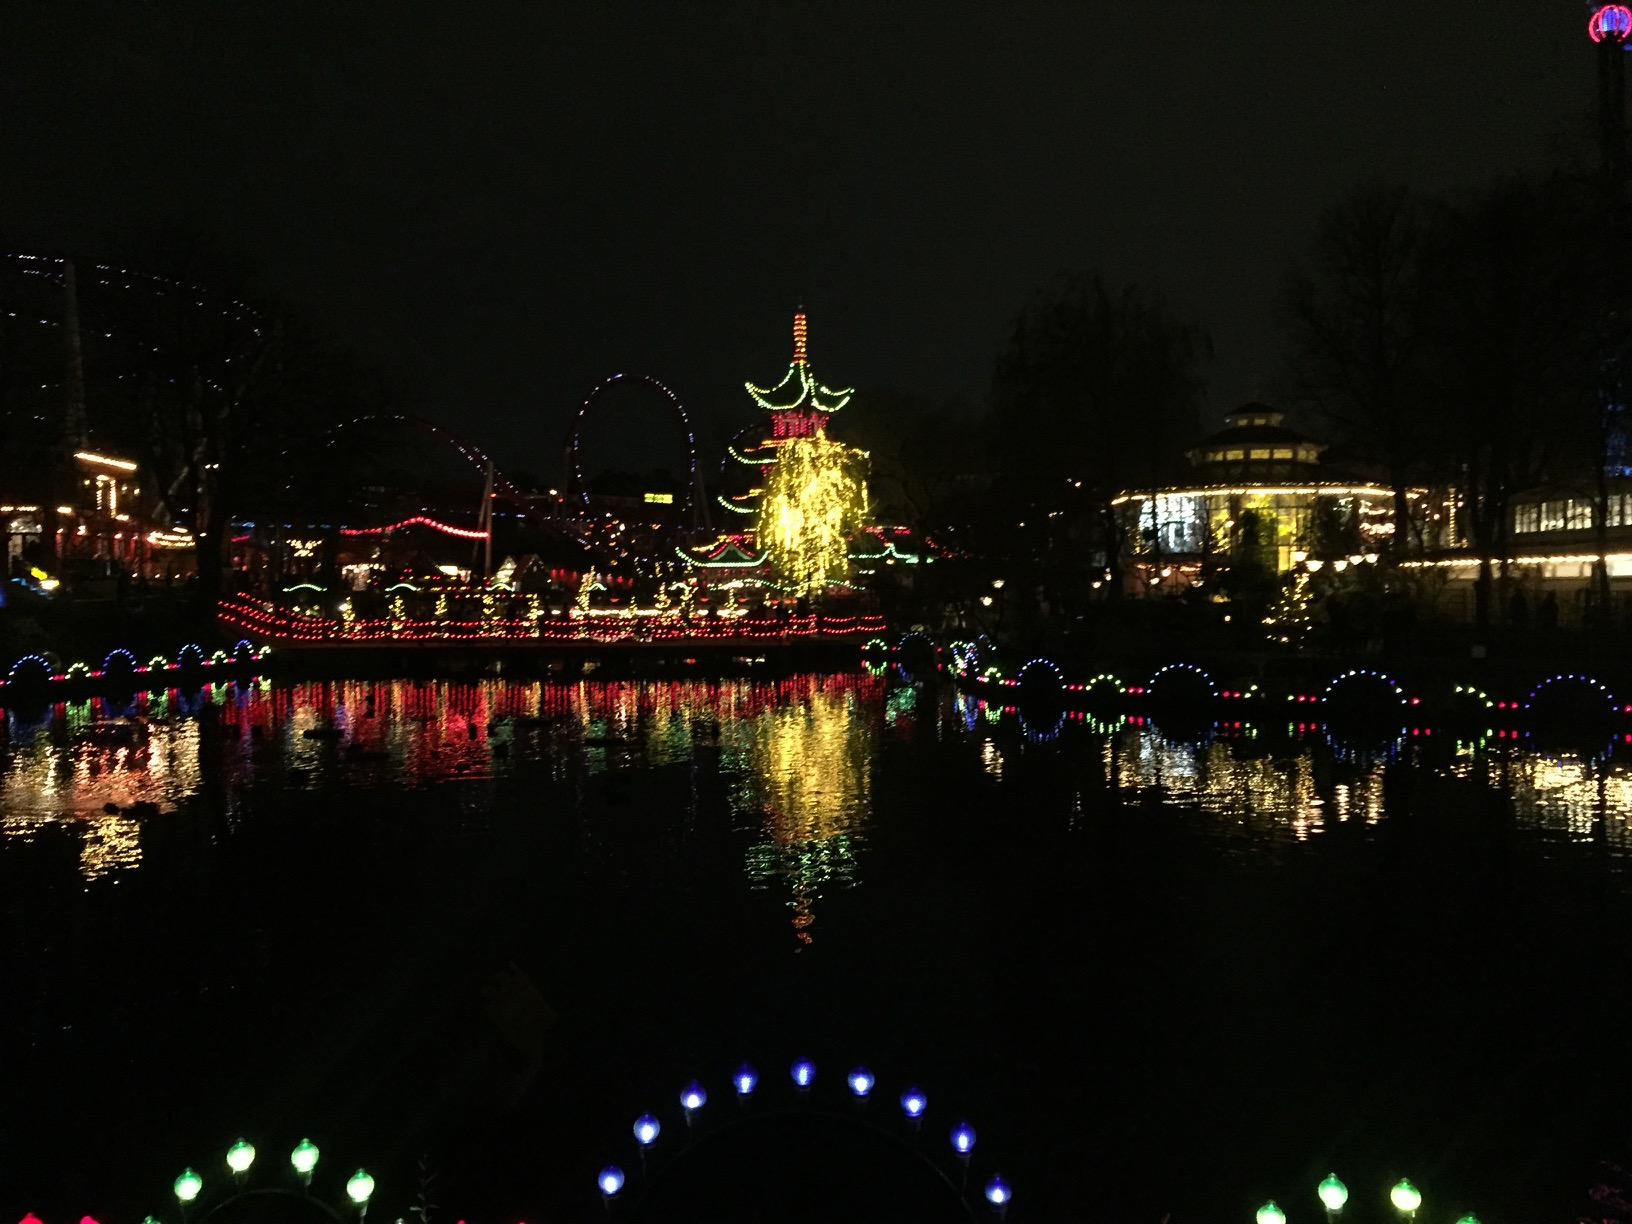 A lake reflects a lit-up amusement park pagoda.